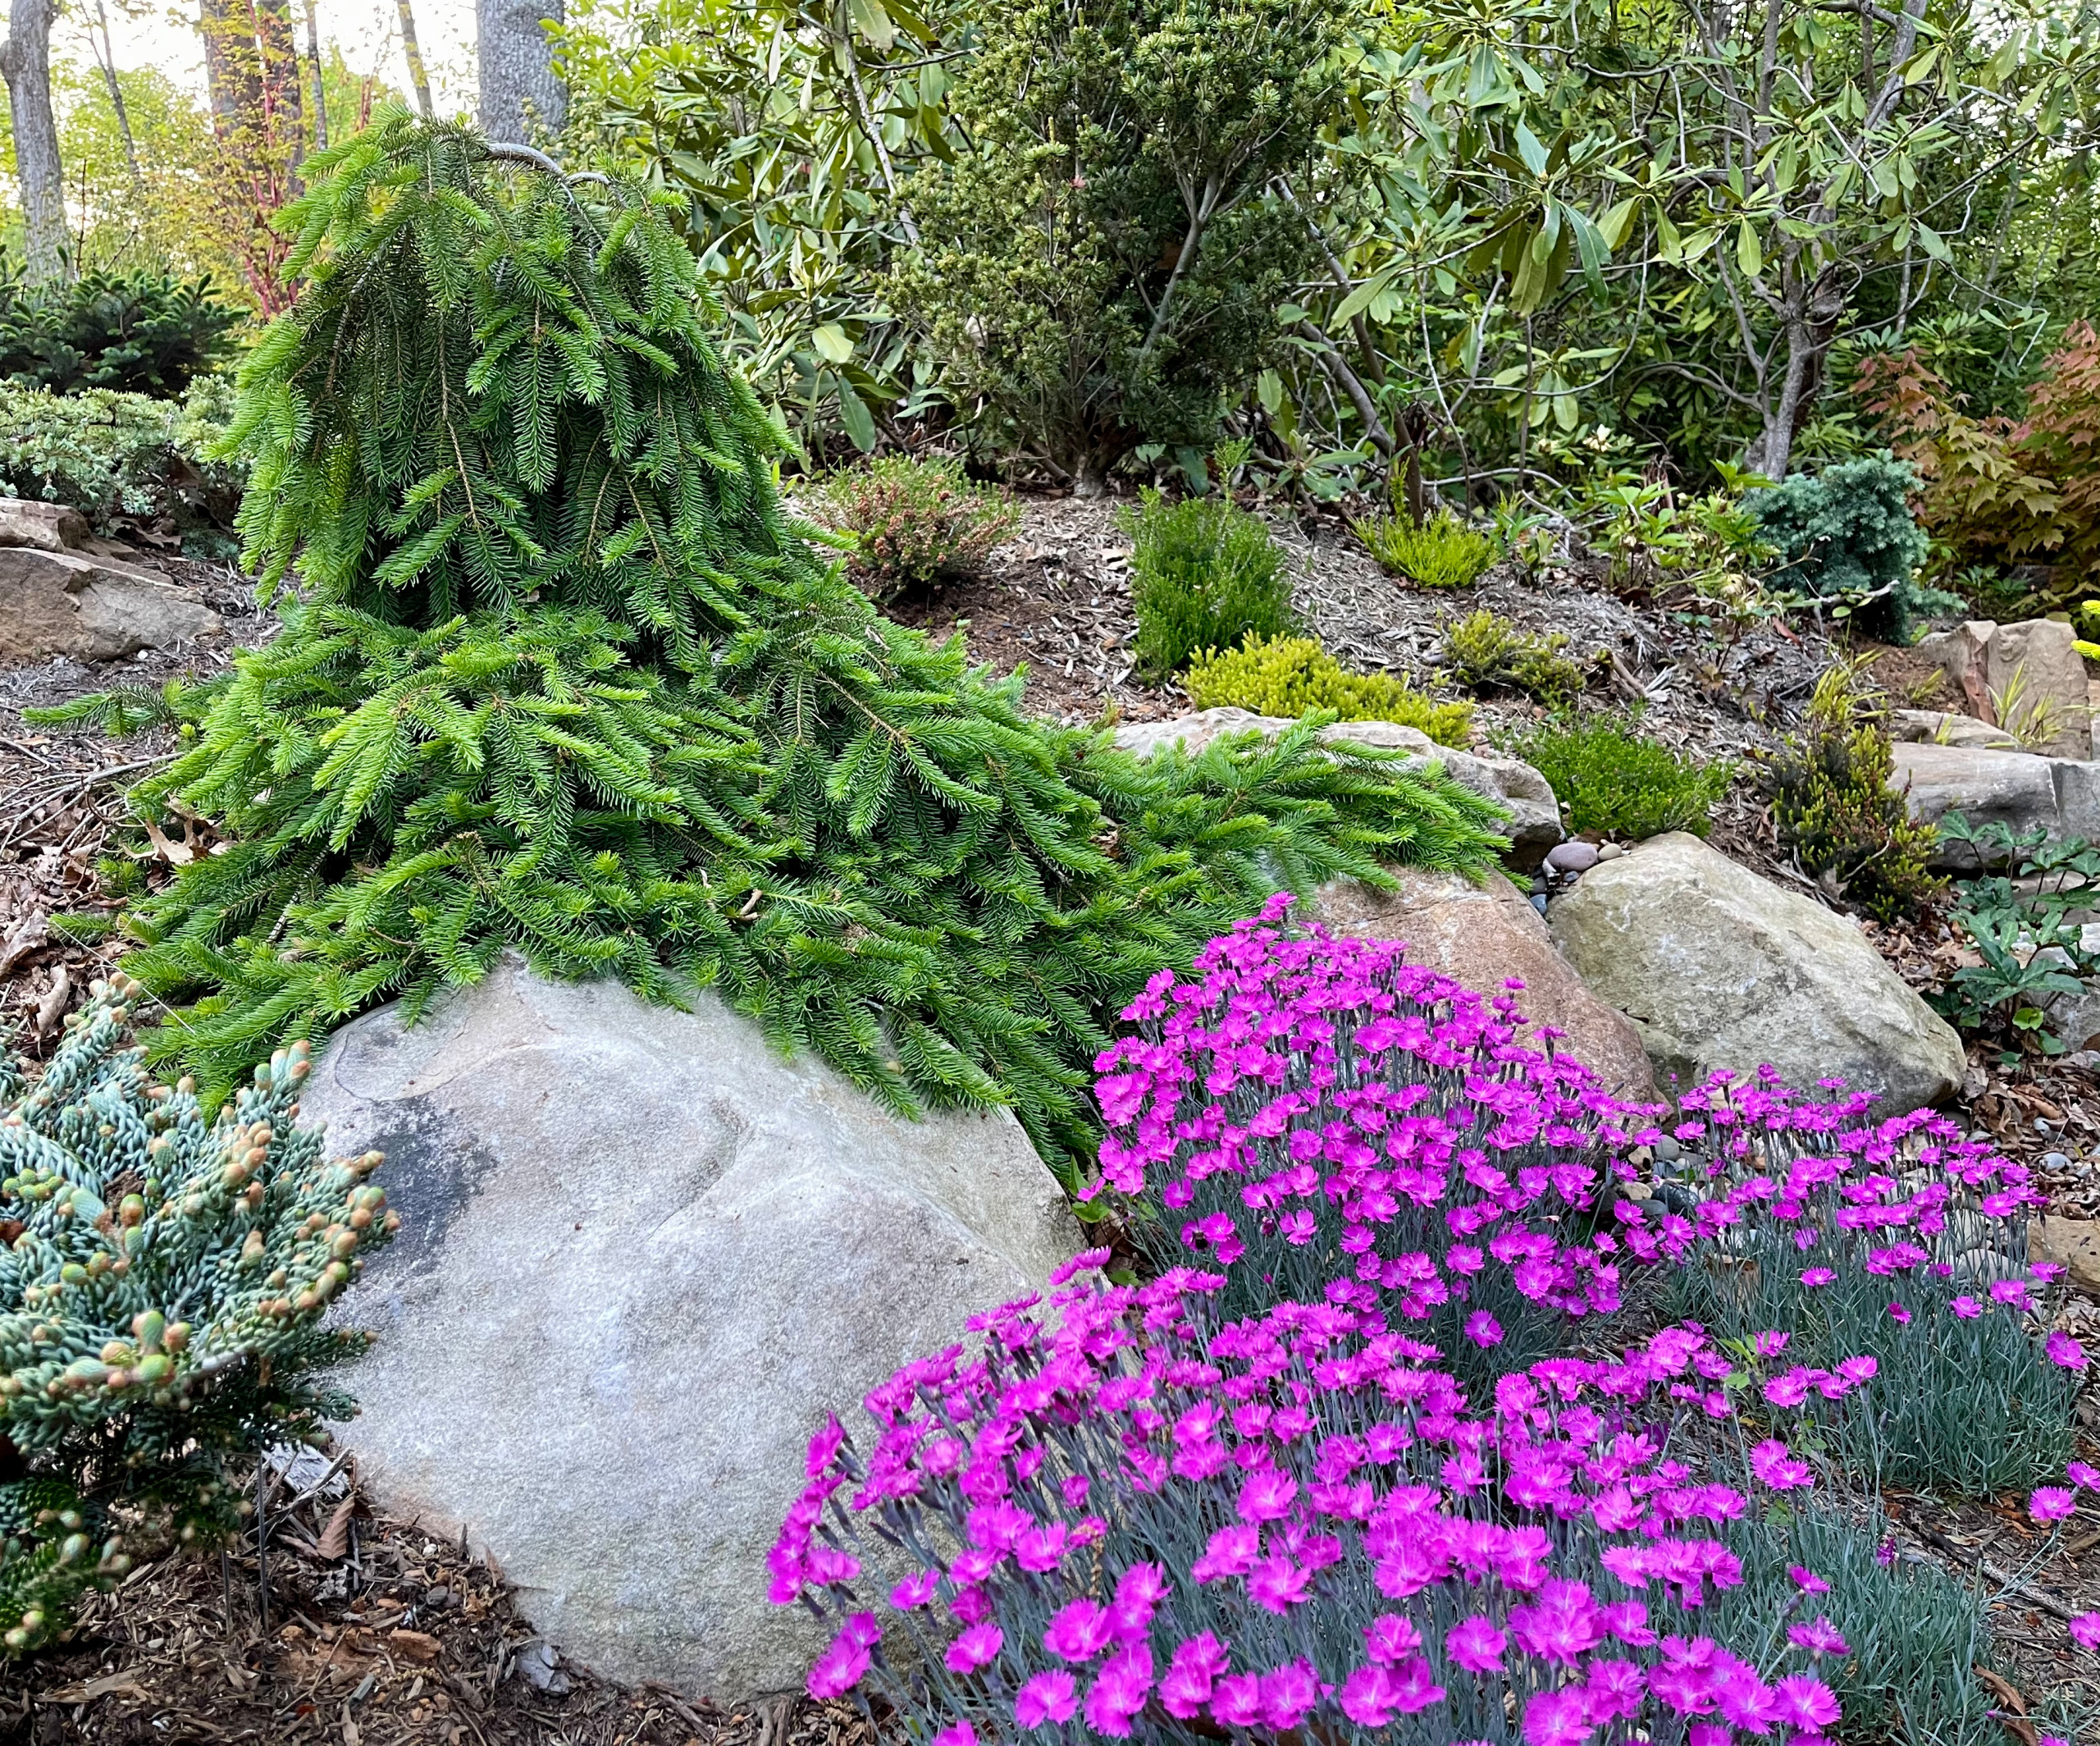 Picea abies 'Formanek' with 'Firewitch' dianthus